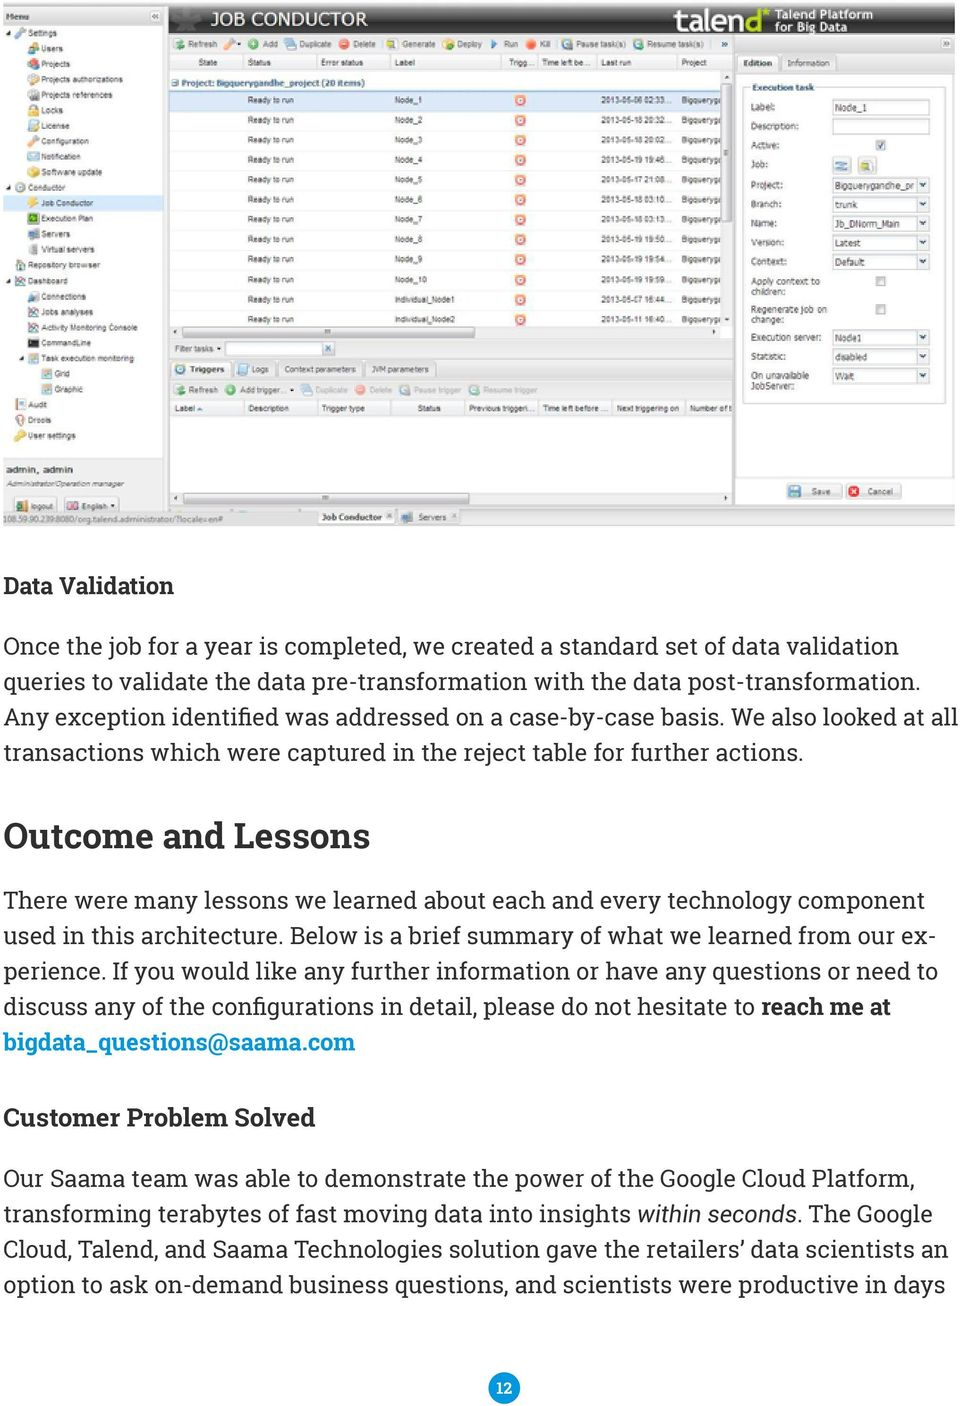 Outcome and Lessons There were many lessons we learned about each and every technology component used in this architecture. Below is a brief summary of what we learned from our experience.